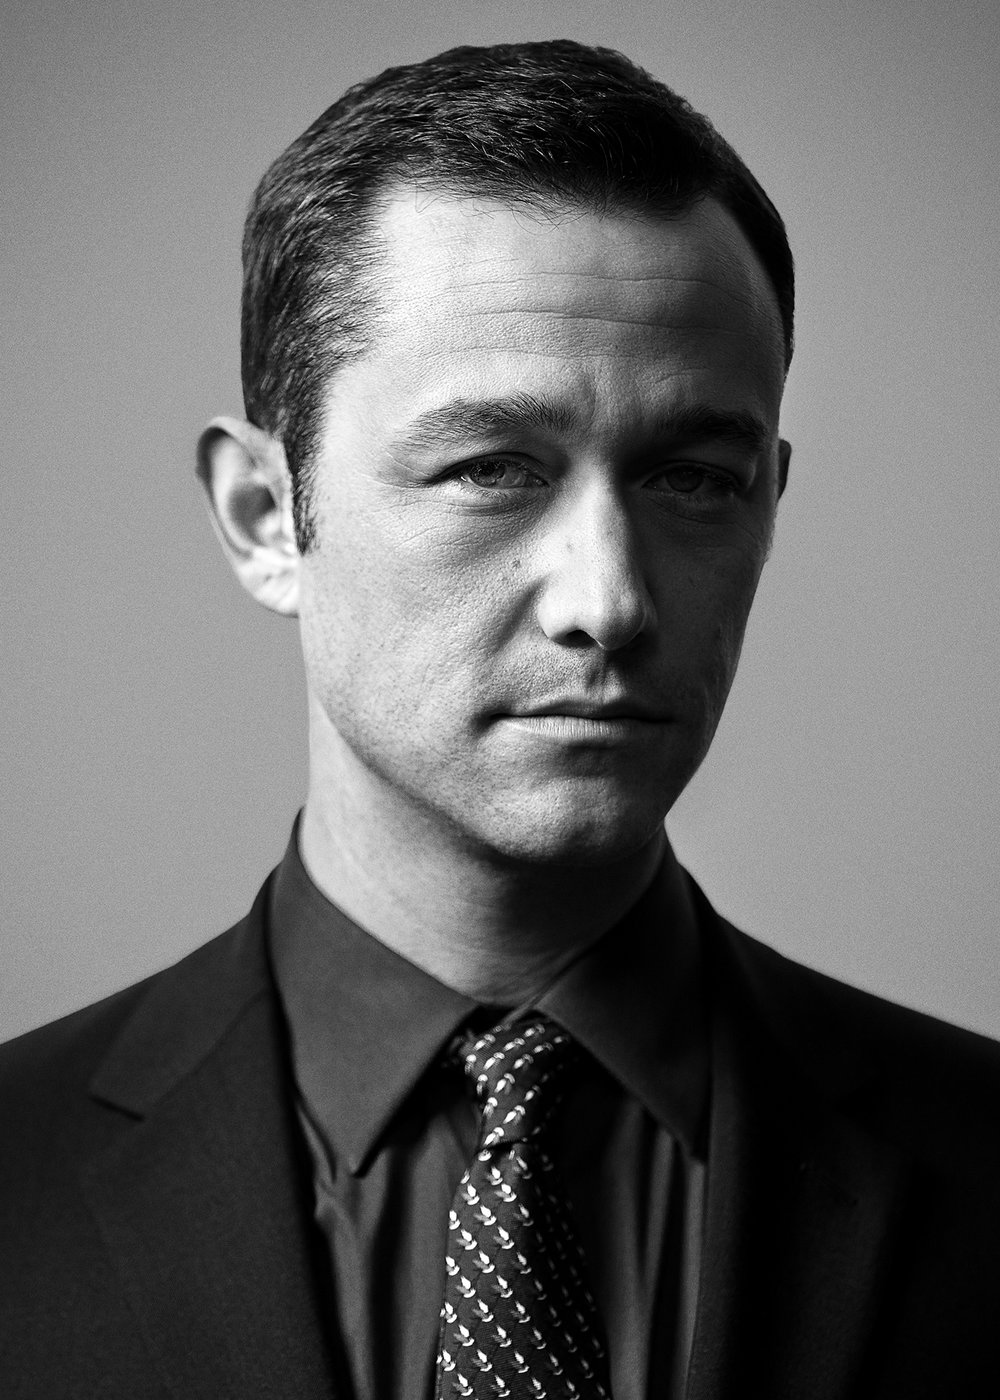 Joseph Gordon-Levitt – Actor